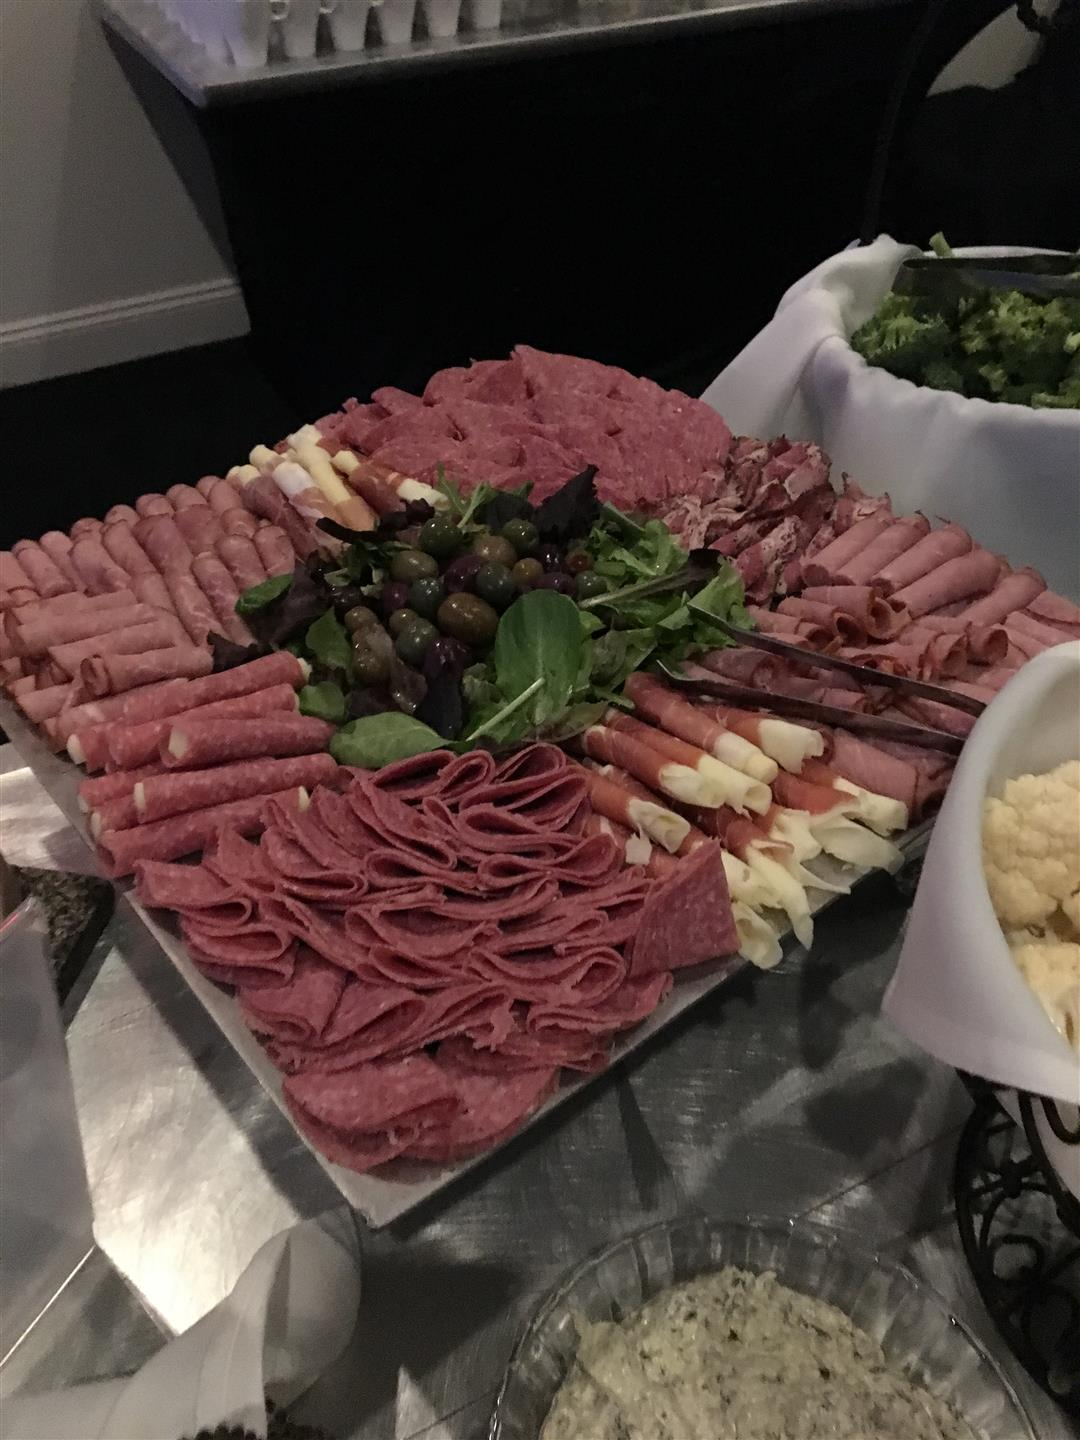 Deli meat antipasto party platter